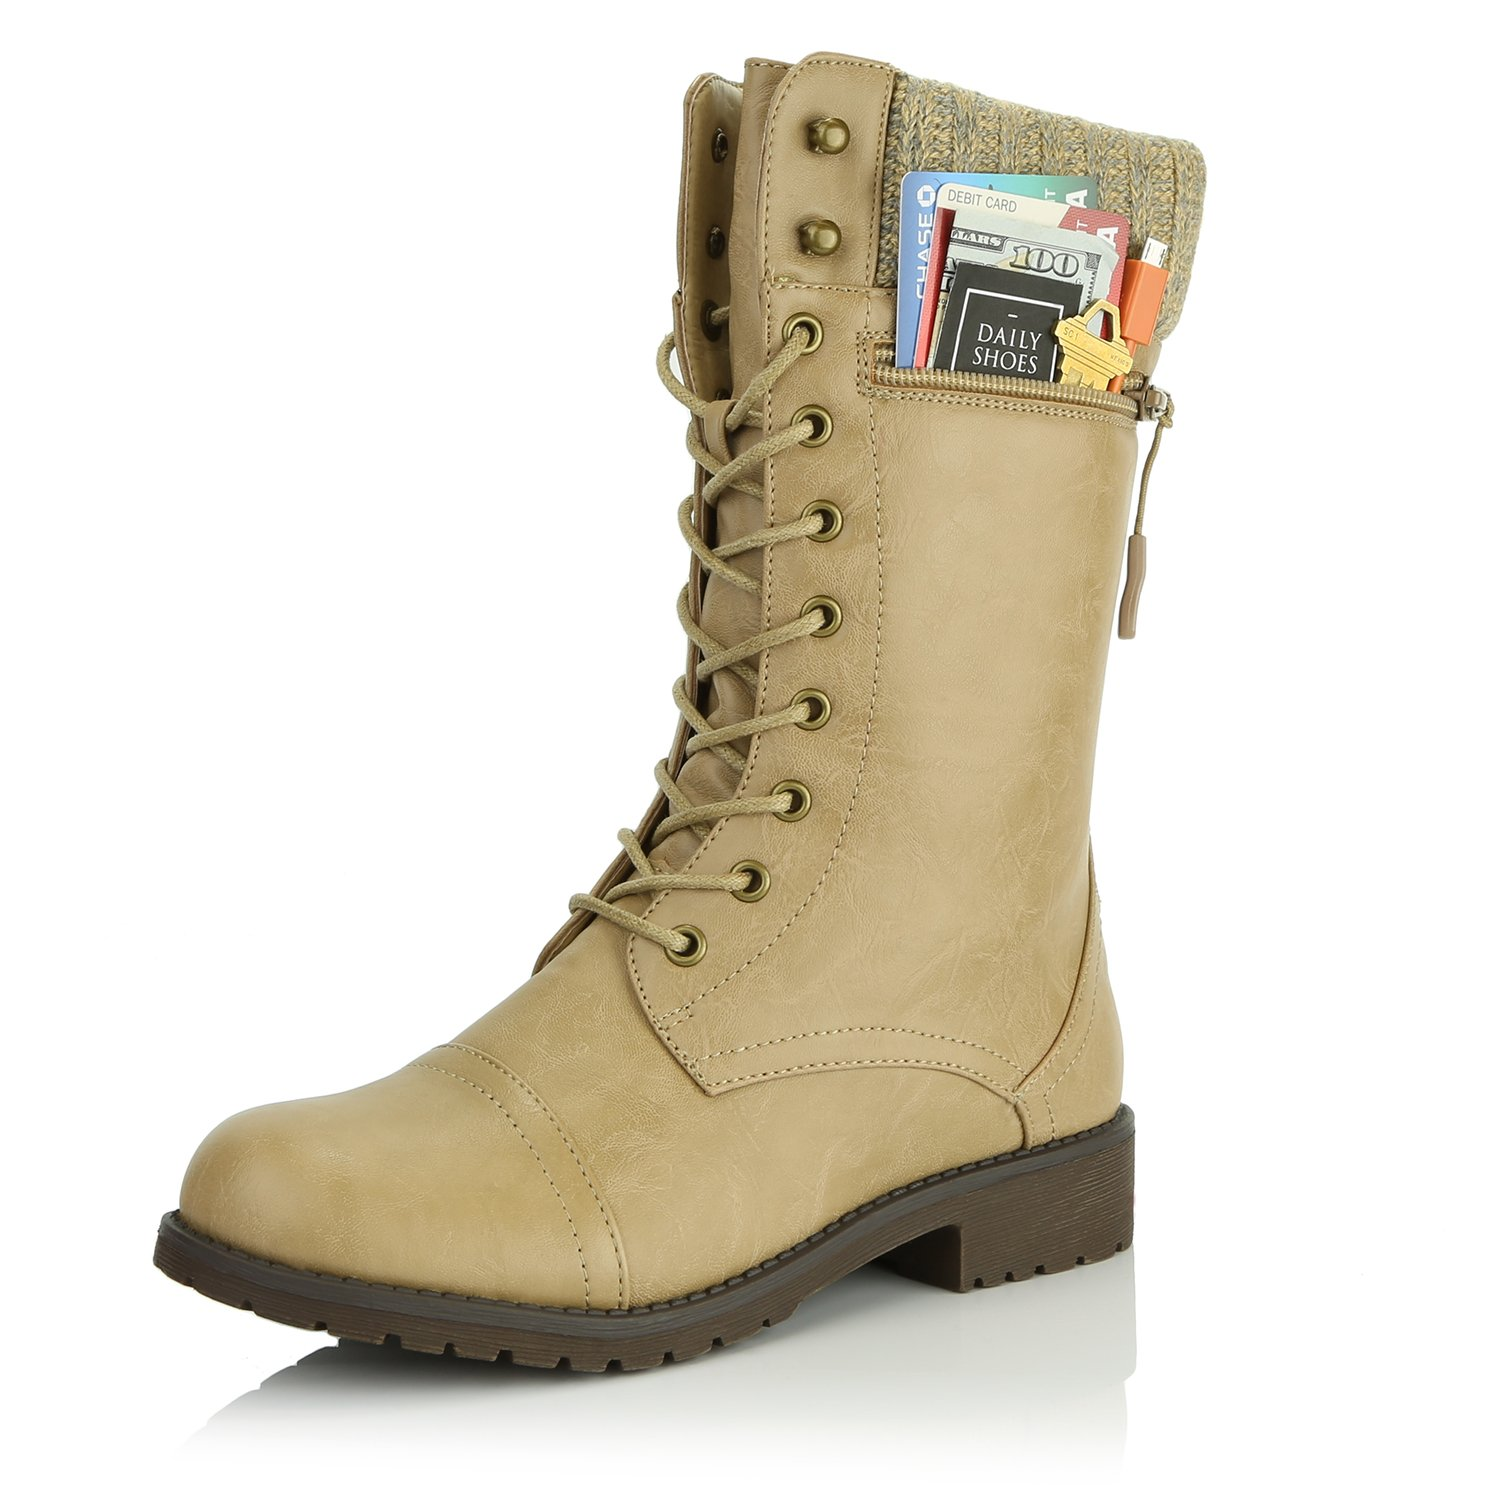 DailyShoes Women's Combat Style Lace up Ankle Bootie Round Toe Military Knit Credit Card Knife Money Wallet Pocket Boots, Beige Pu, 5.5